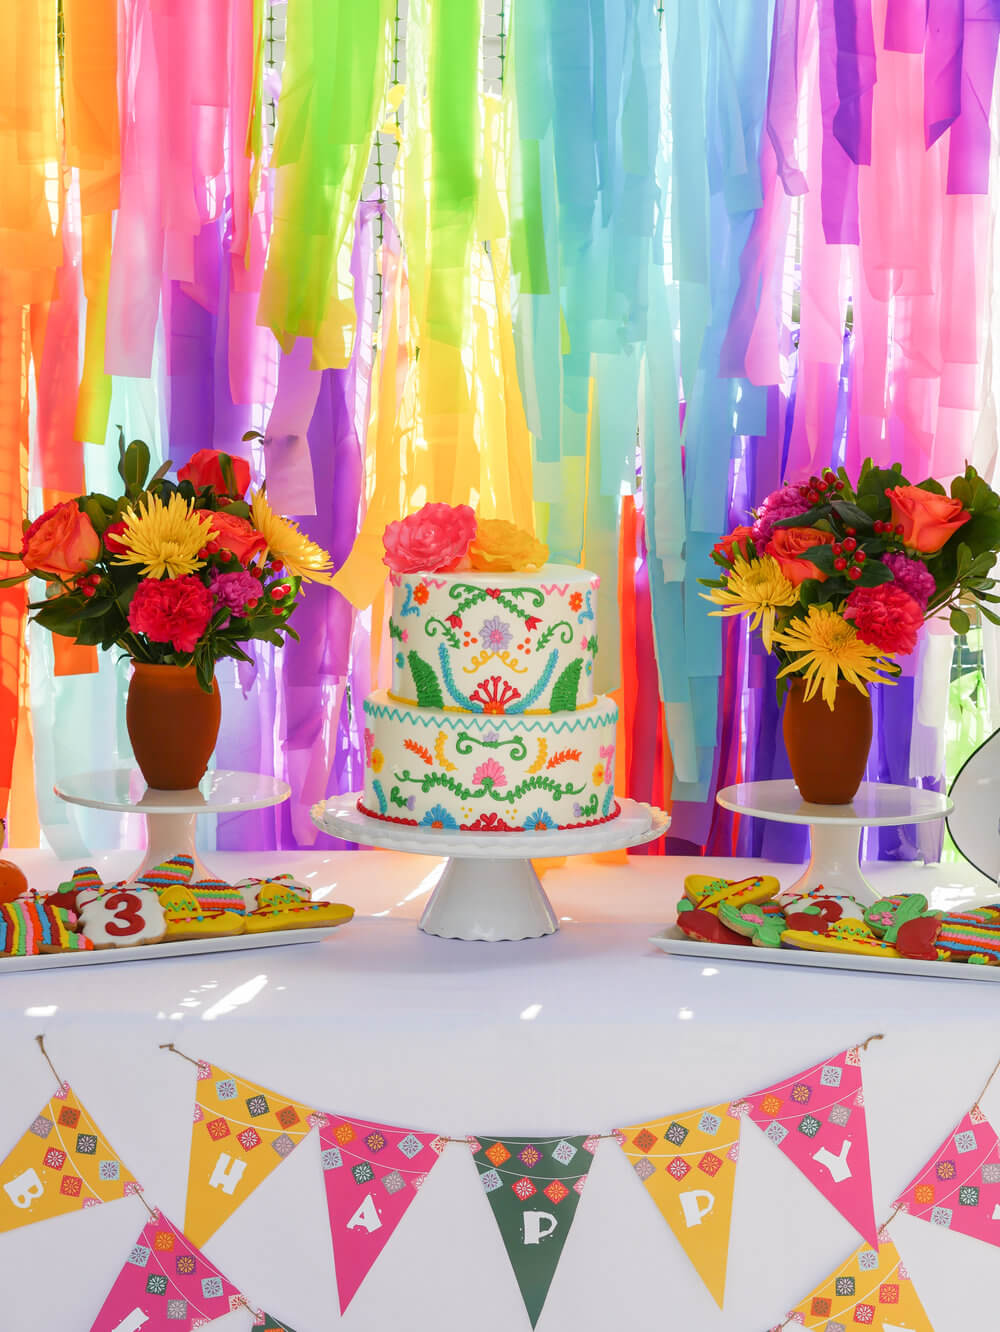 A Happy Birthday banner, Mexican fiesta cake, sombrero, cactus, pinata, and chili pepper cookies, along with fresh flowers and a fun streamer backdrop is the way to create the ultimate fiesta birthday party - inspired by the movie Coco. Party Styling by Austin Texas party planner Mint Event Design www.minteventdesign.com #kidsbirthdayparty #fiestaparty #disneycoco #partyideas #girlbirthdayparty #cocobirthdayparty